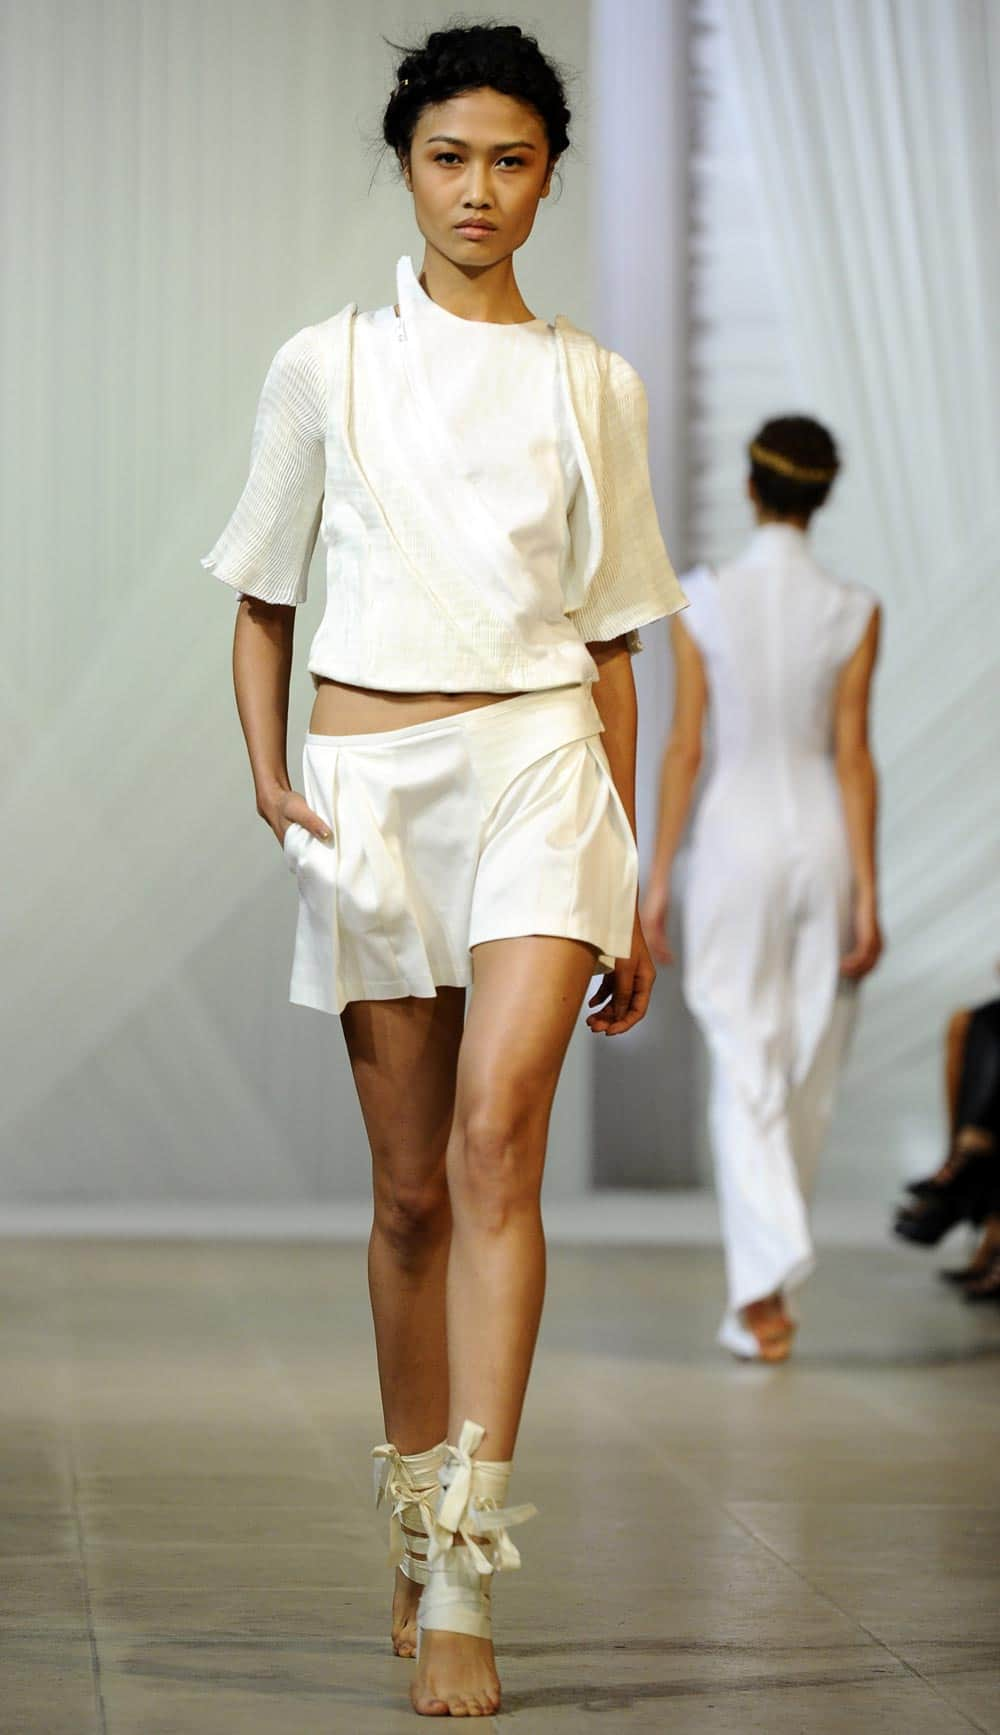 A model presents a creation for Fatima Lopes` ready-to-wear Spring/Summer 2014 fashion collection presented in Paris.